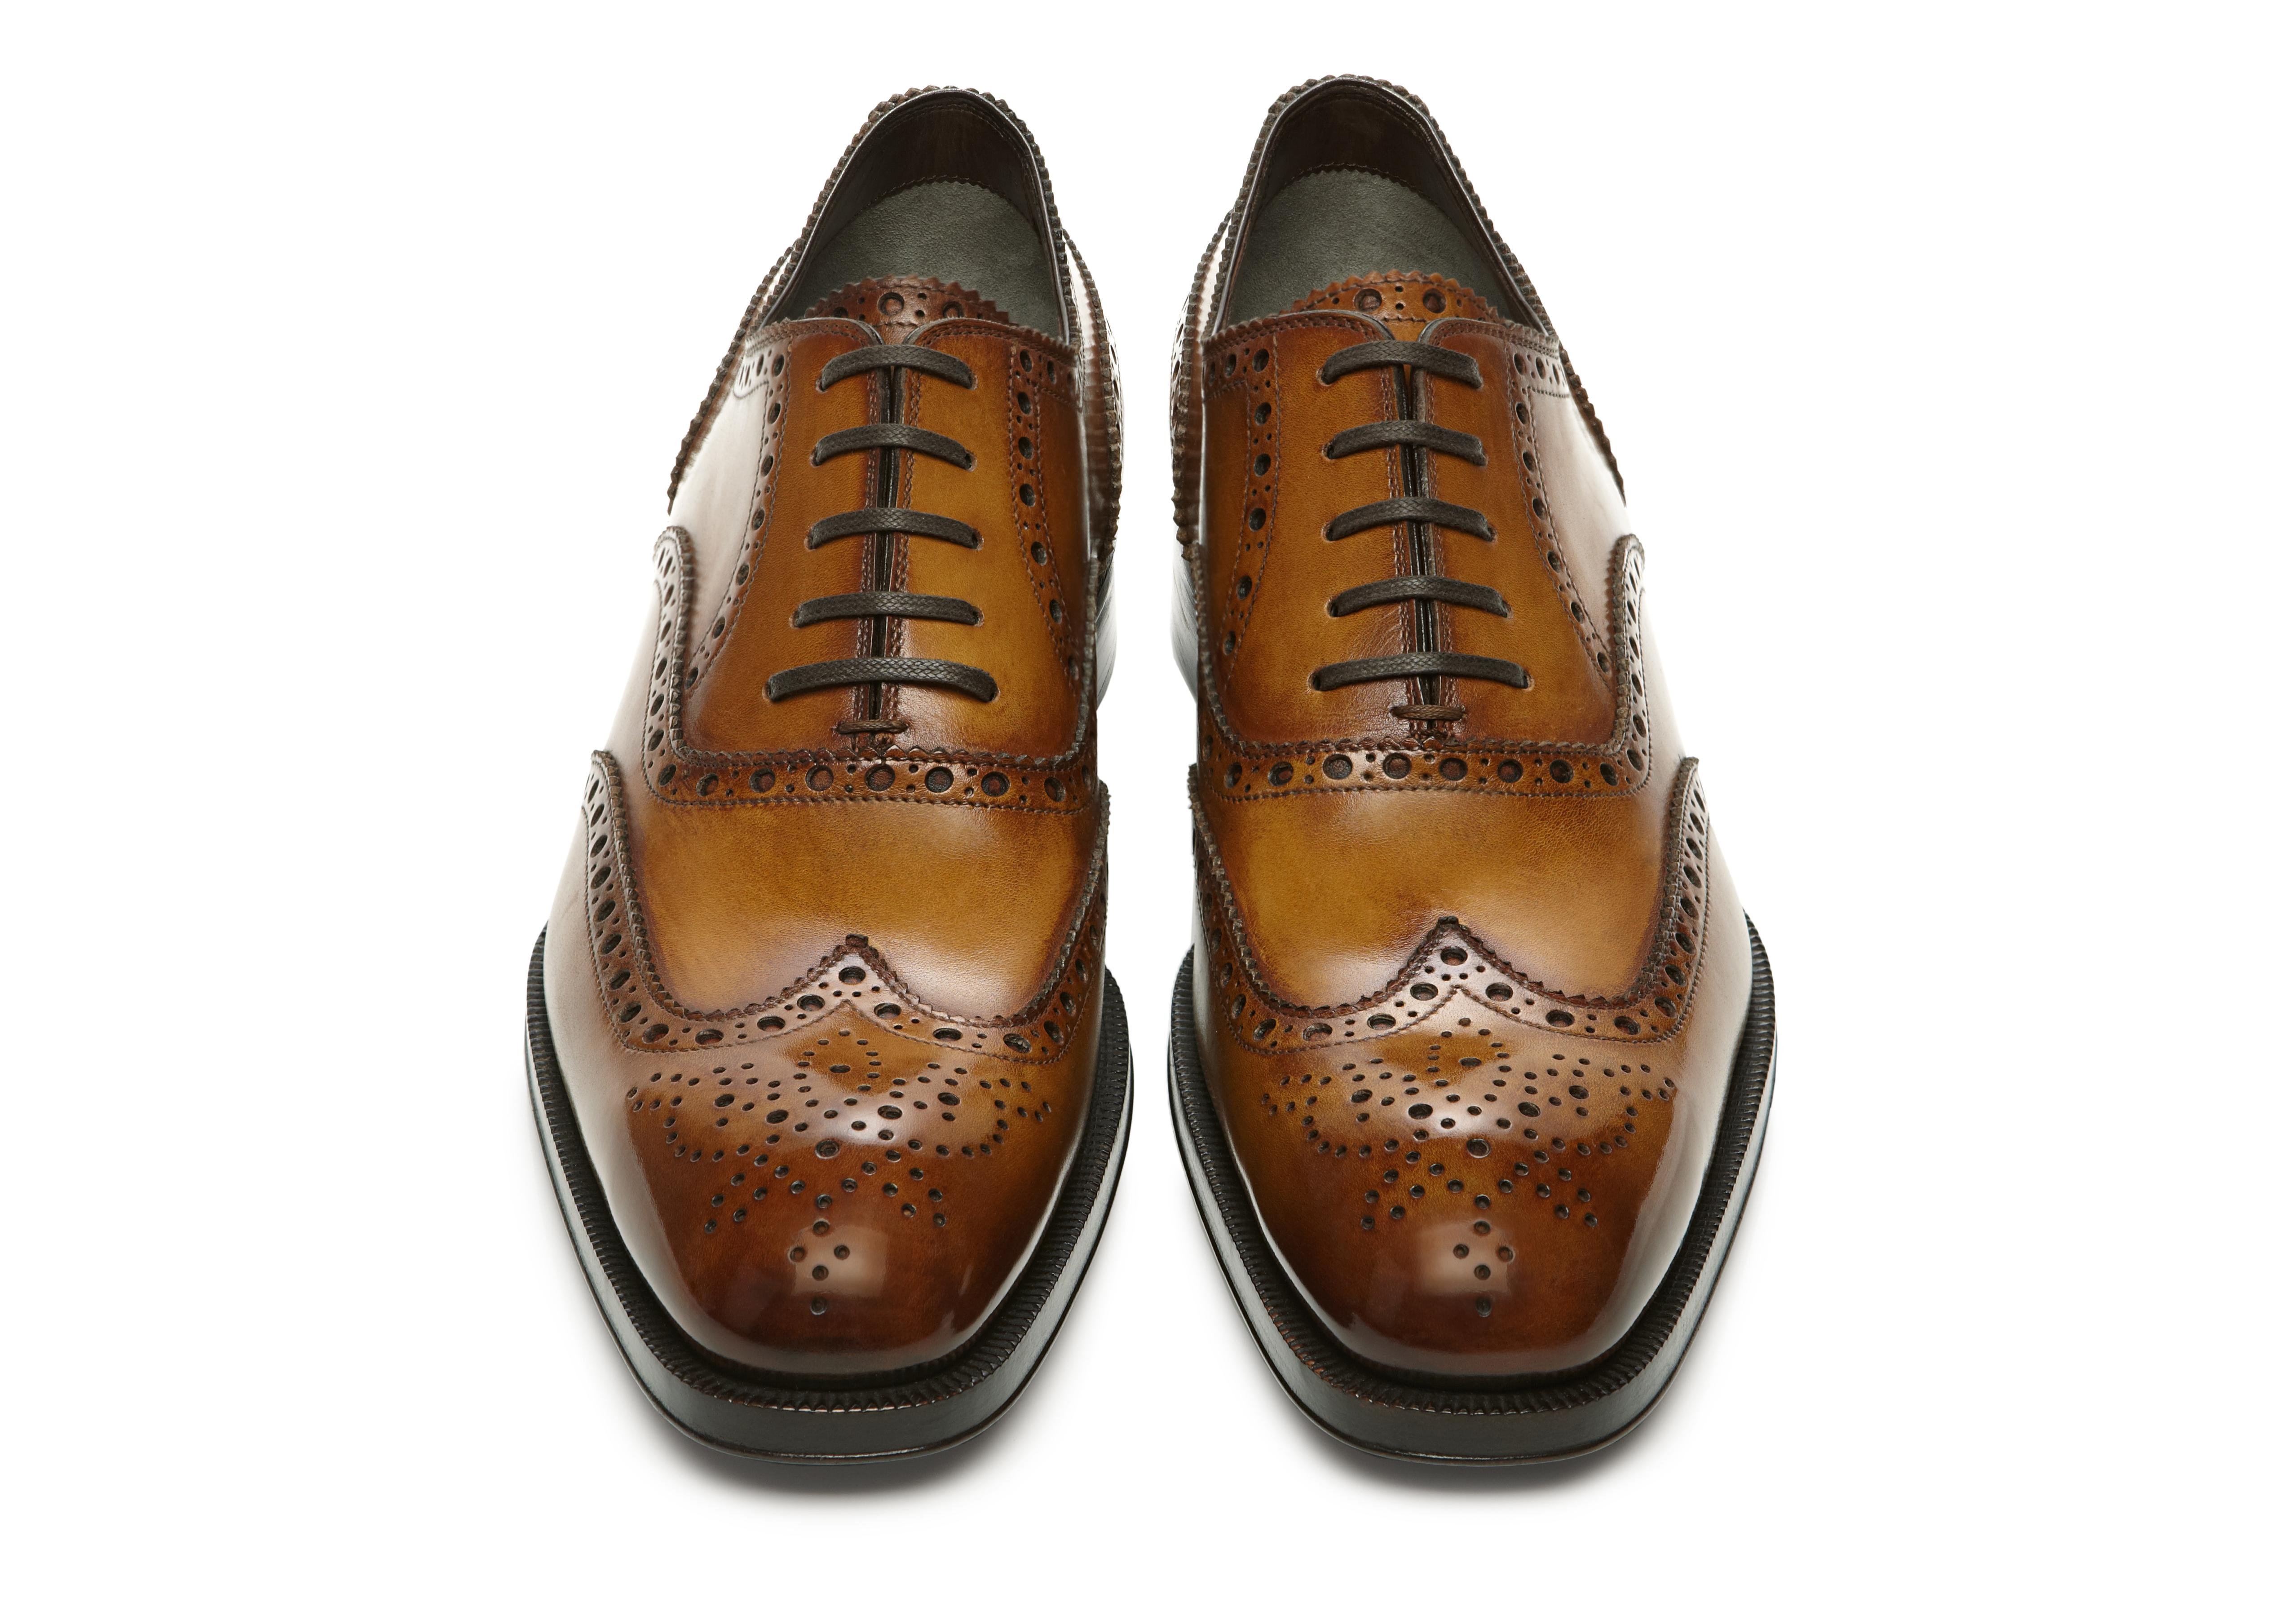 Edward Burnished Leather French Brogue Wingtip Lace-Up C thumbnail